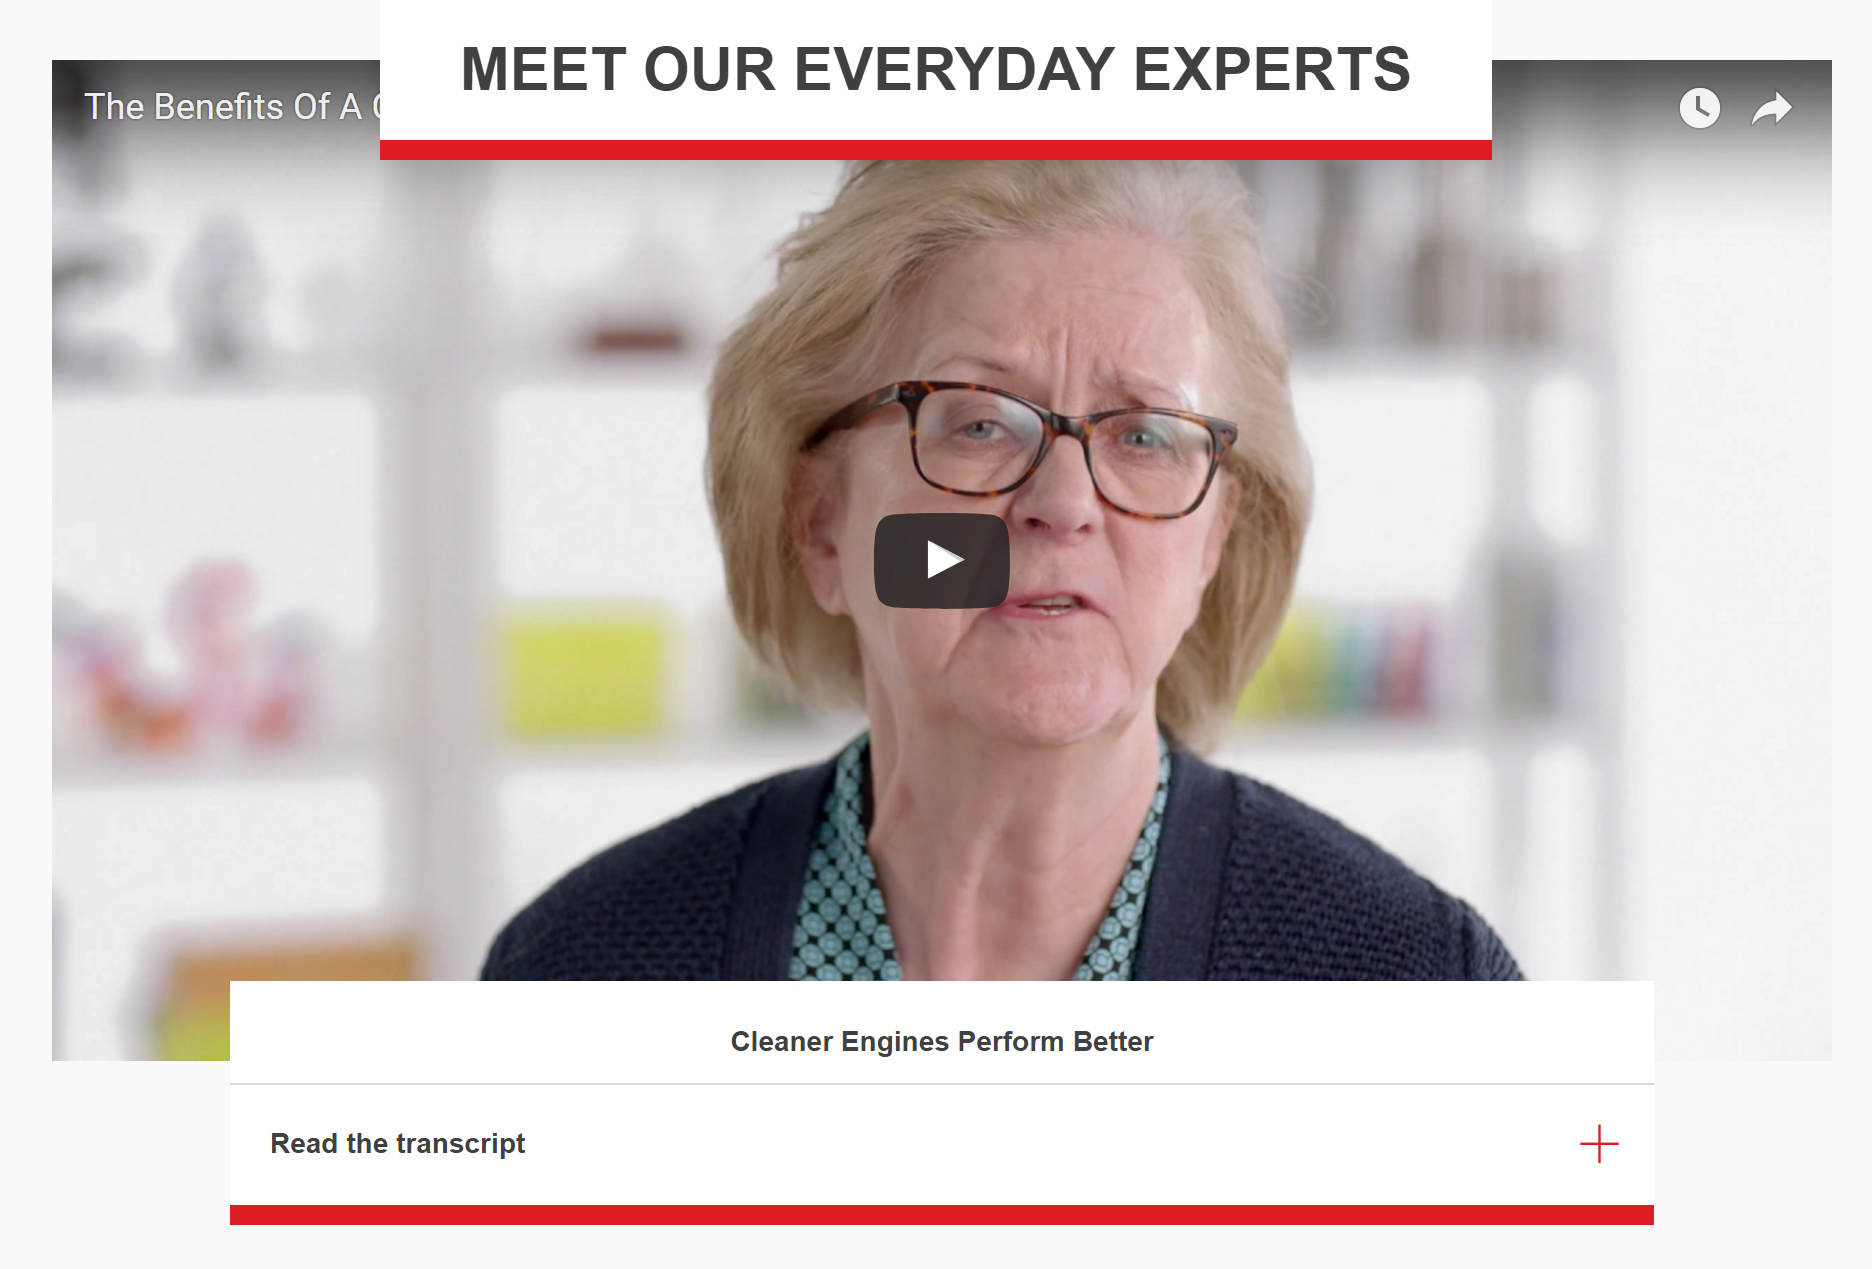 Shell Everyday experts